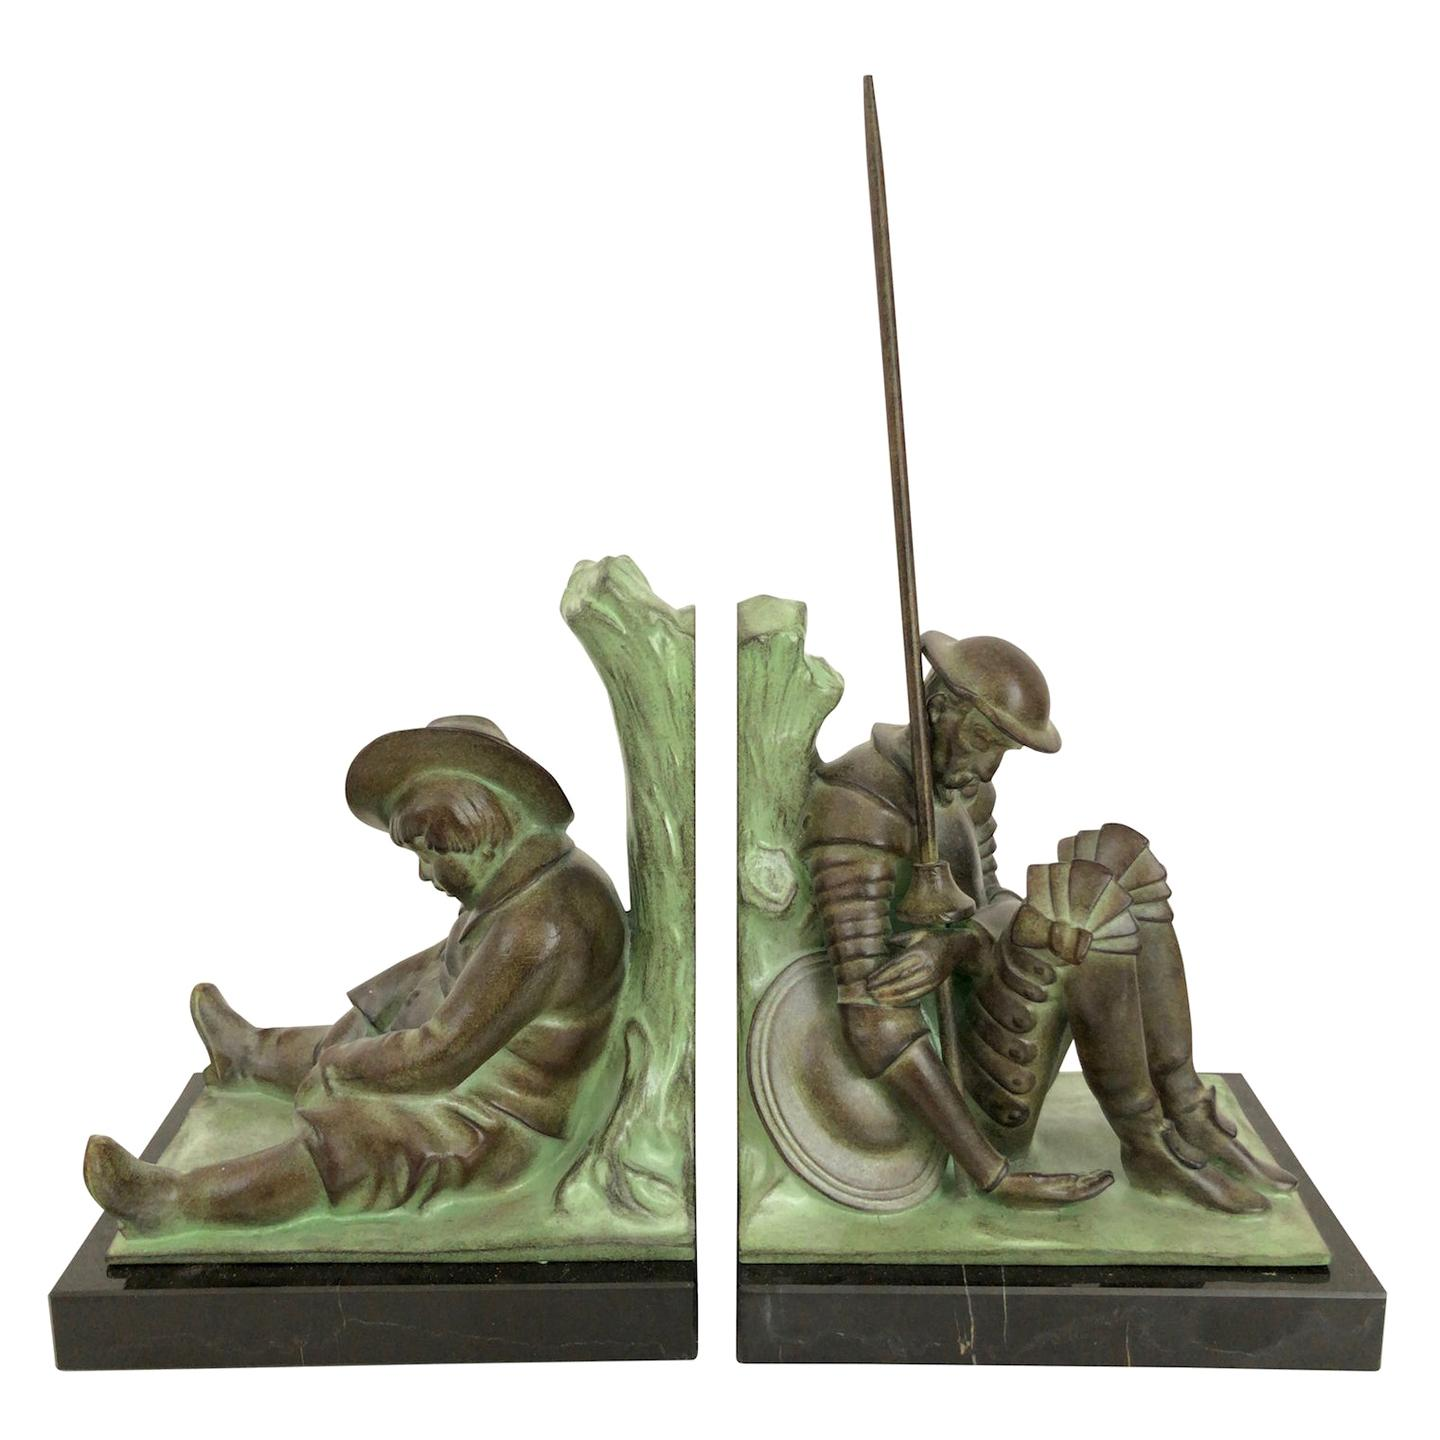 Don Quichotte and Sancho Panza Art Deco Bookends by Janle for Max Le Verrier